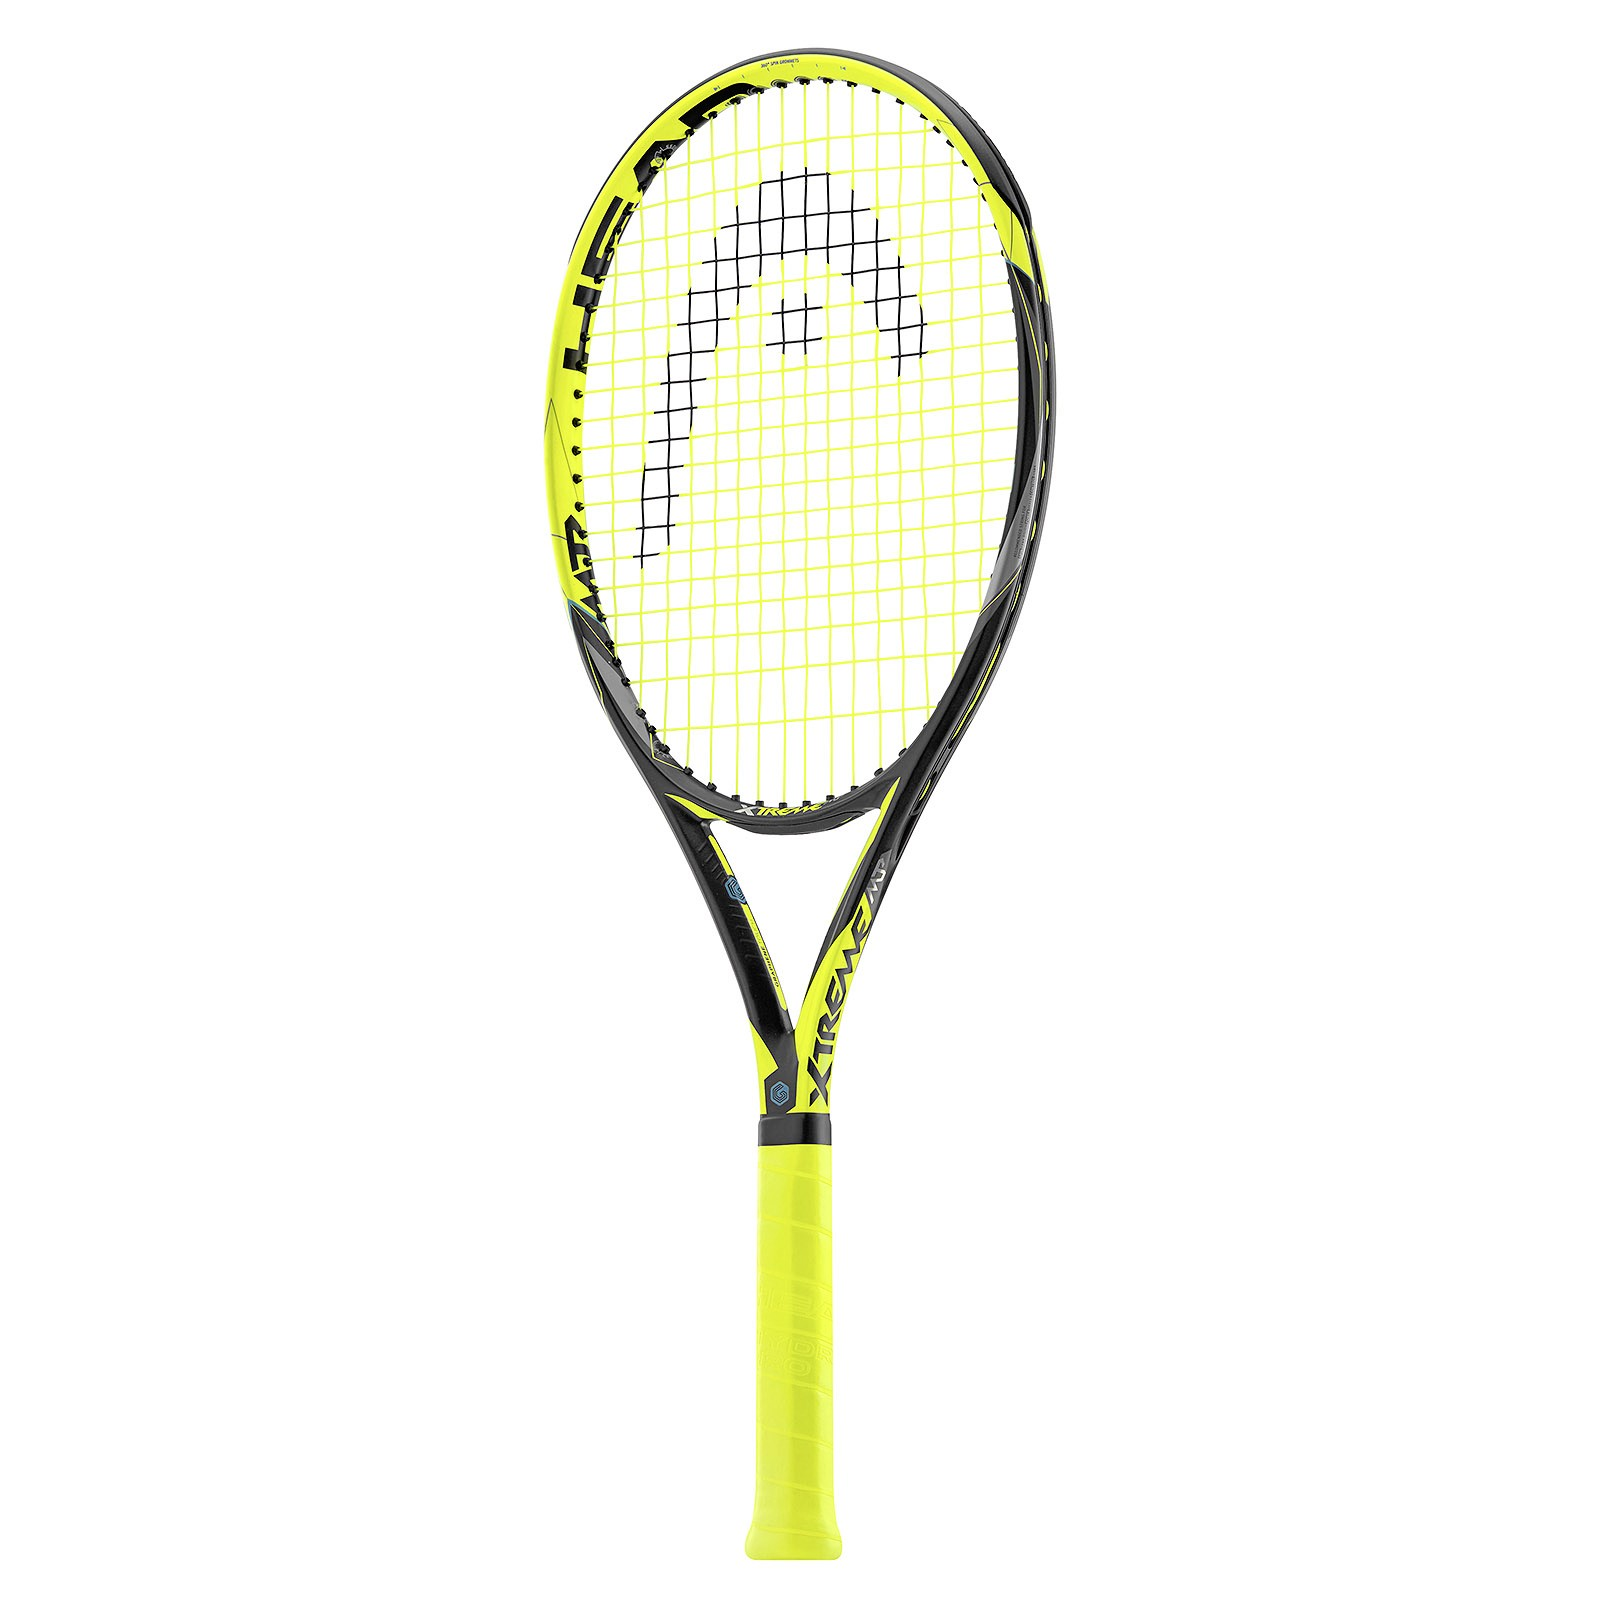 Rakieta tenisowa Head Graphene Touch Extreme MP